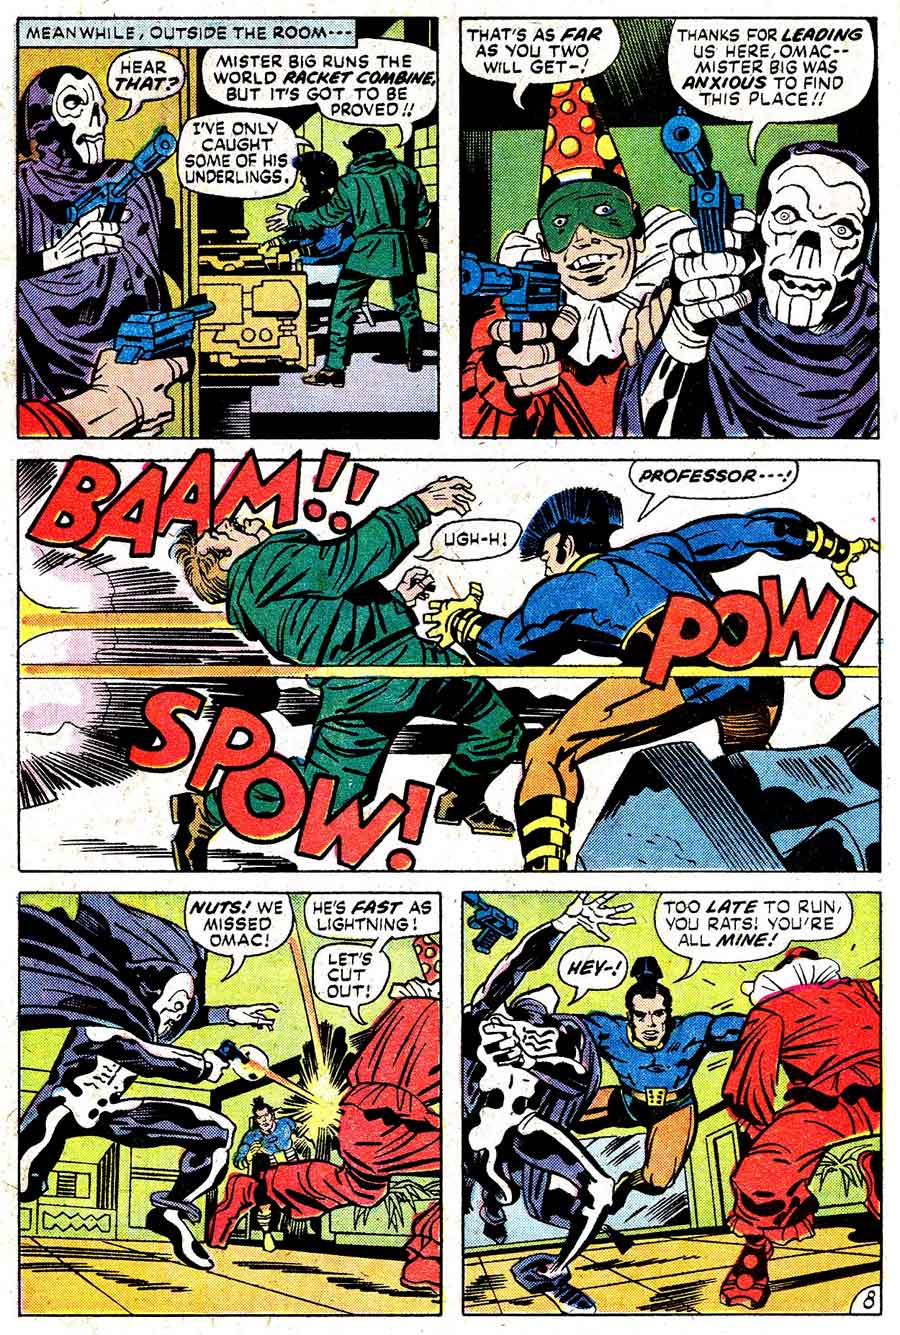 Omac v1 #2 dc bronze age comic book page art by Jack Kirby